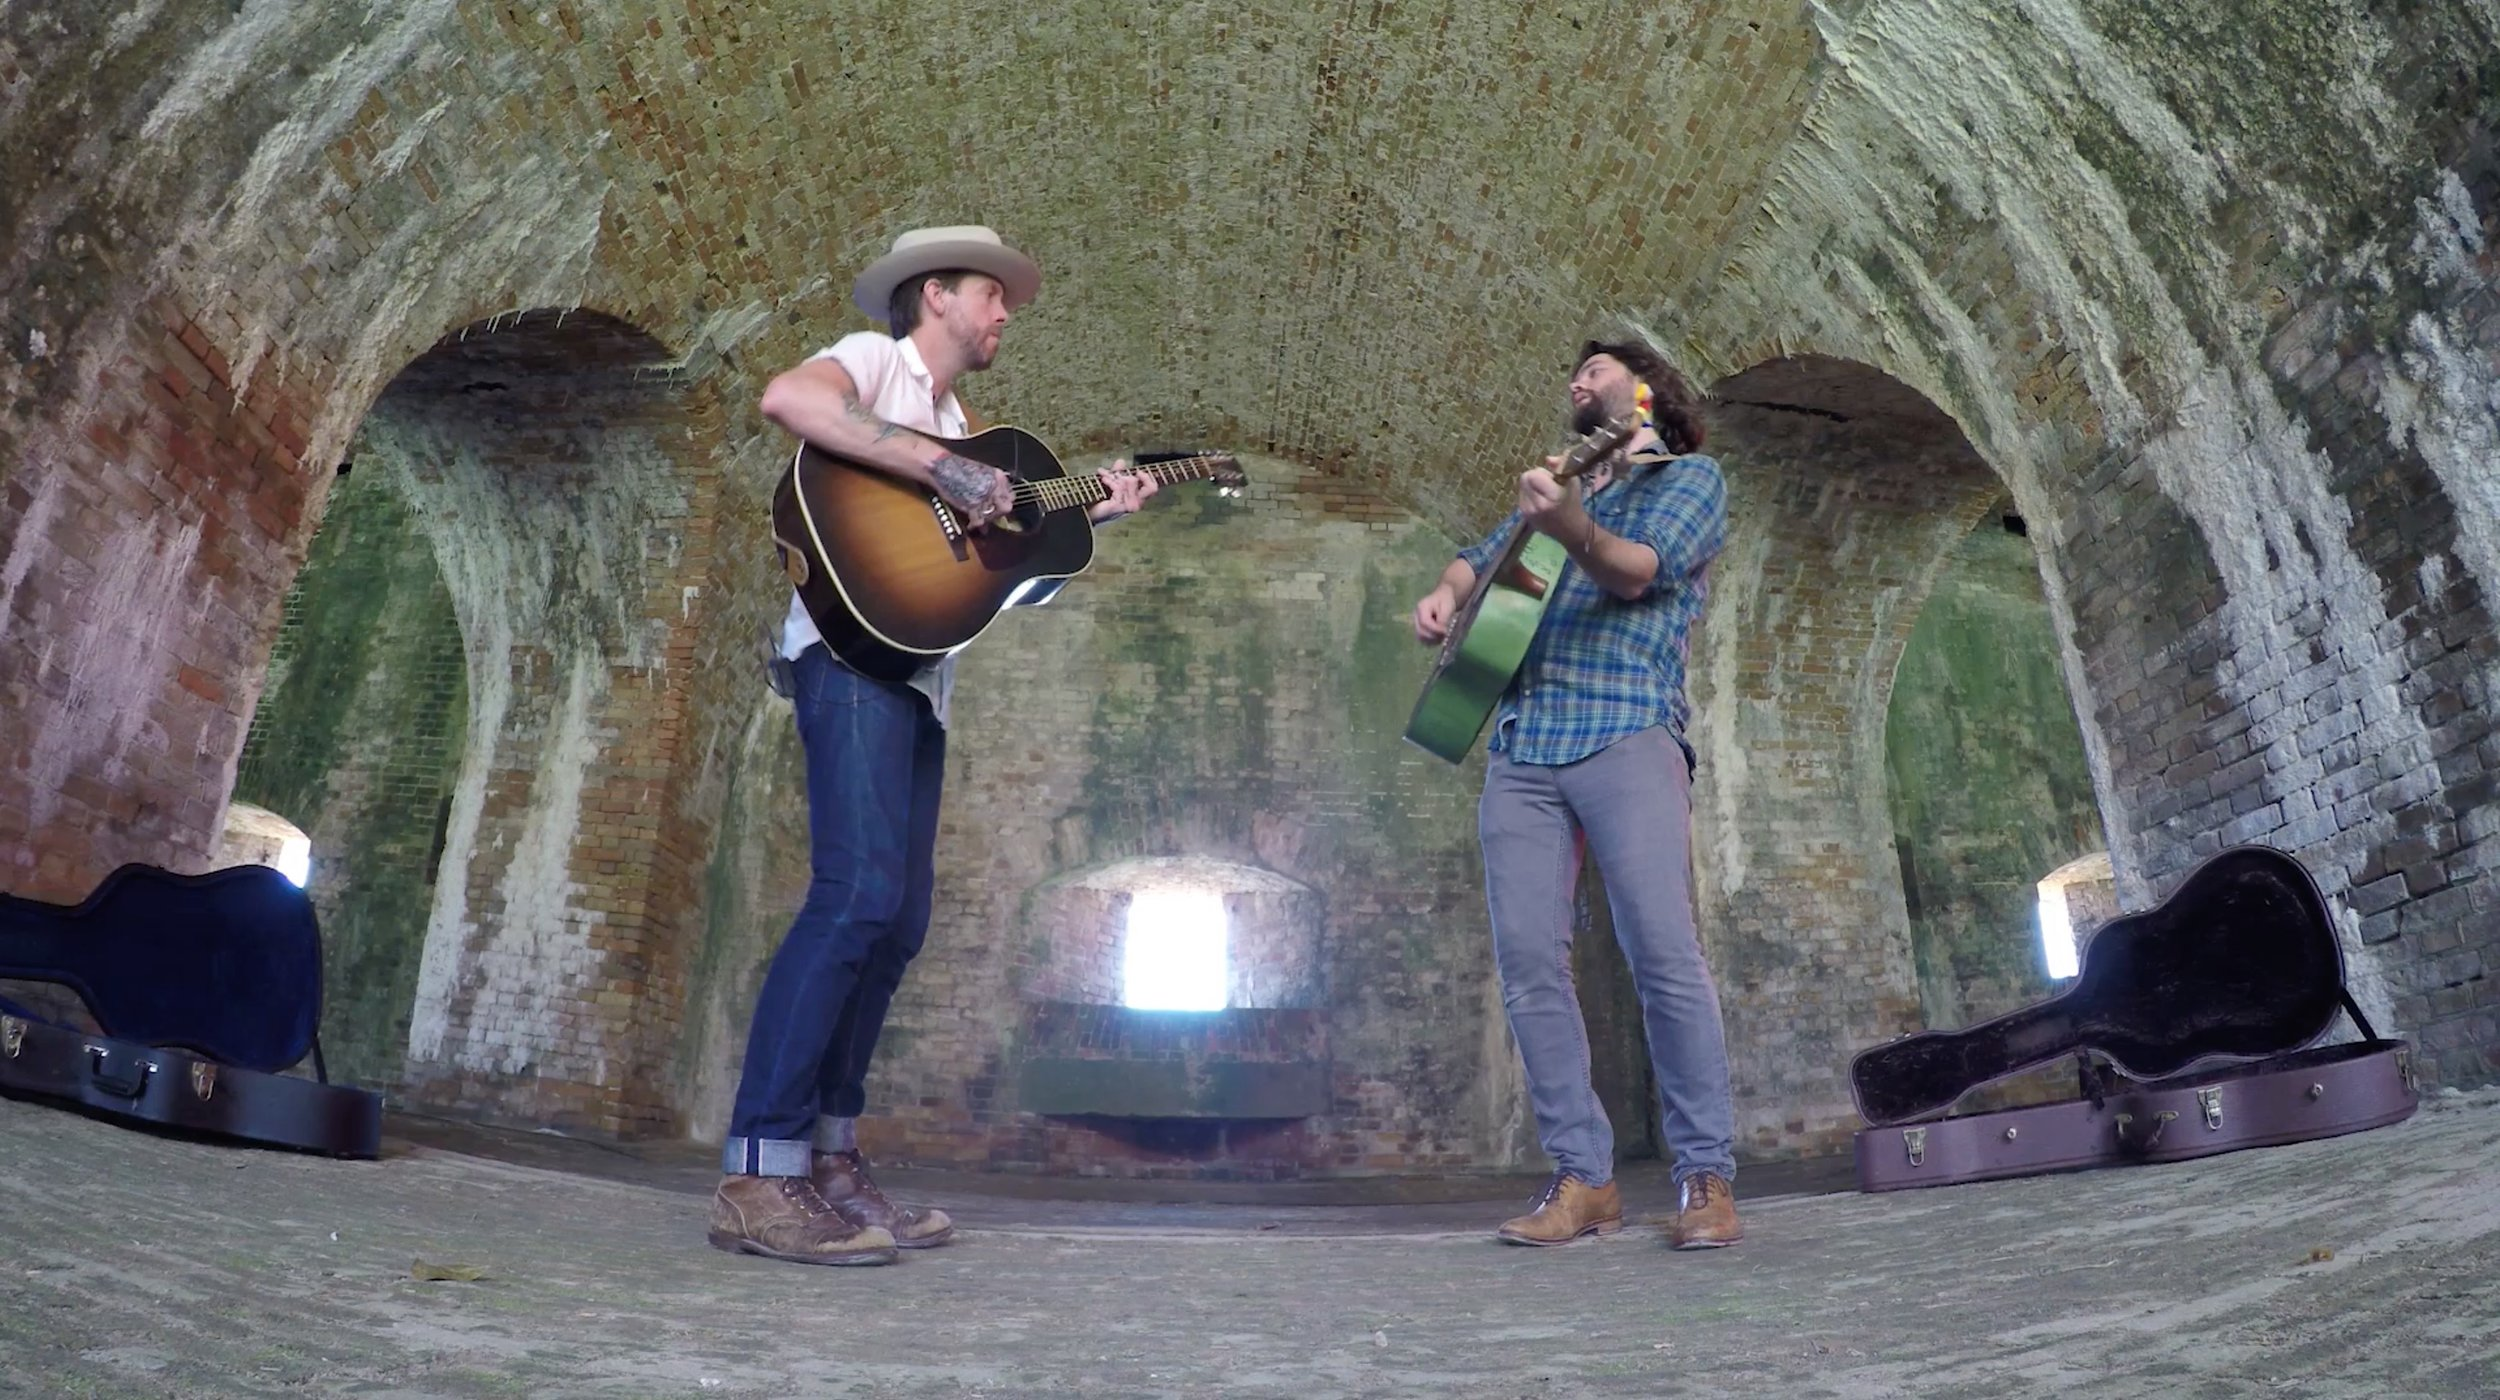 Jeremy Stanfill    &    Joshua Andrew Cosby    have been playing music together for years, most known for their work in the band    Star & Micey   . When they are home from the road they get together as a duo and play shows around town. Check them out Saturday December 8th at    Crosstown Brewing Company    from 4-6PM!